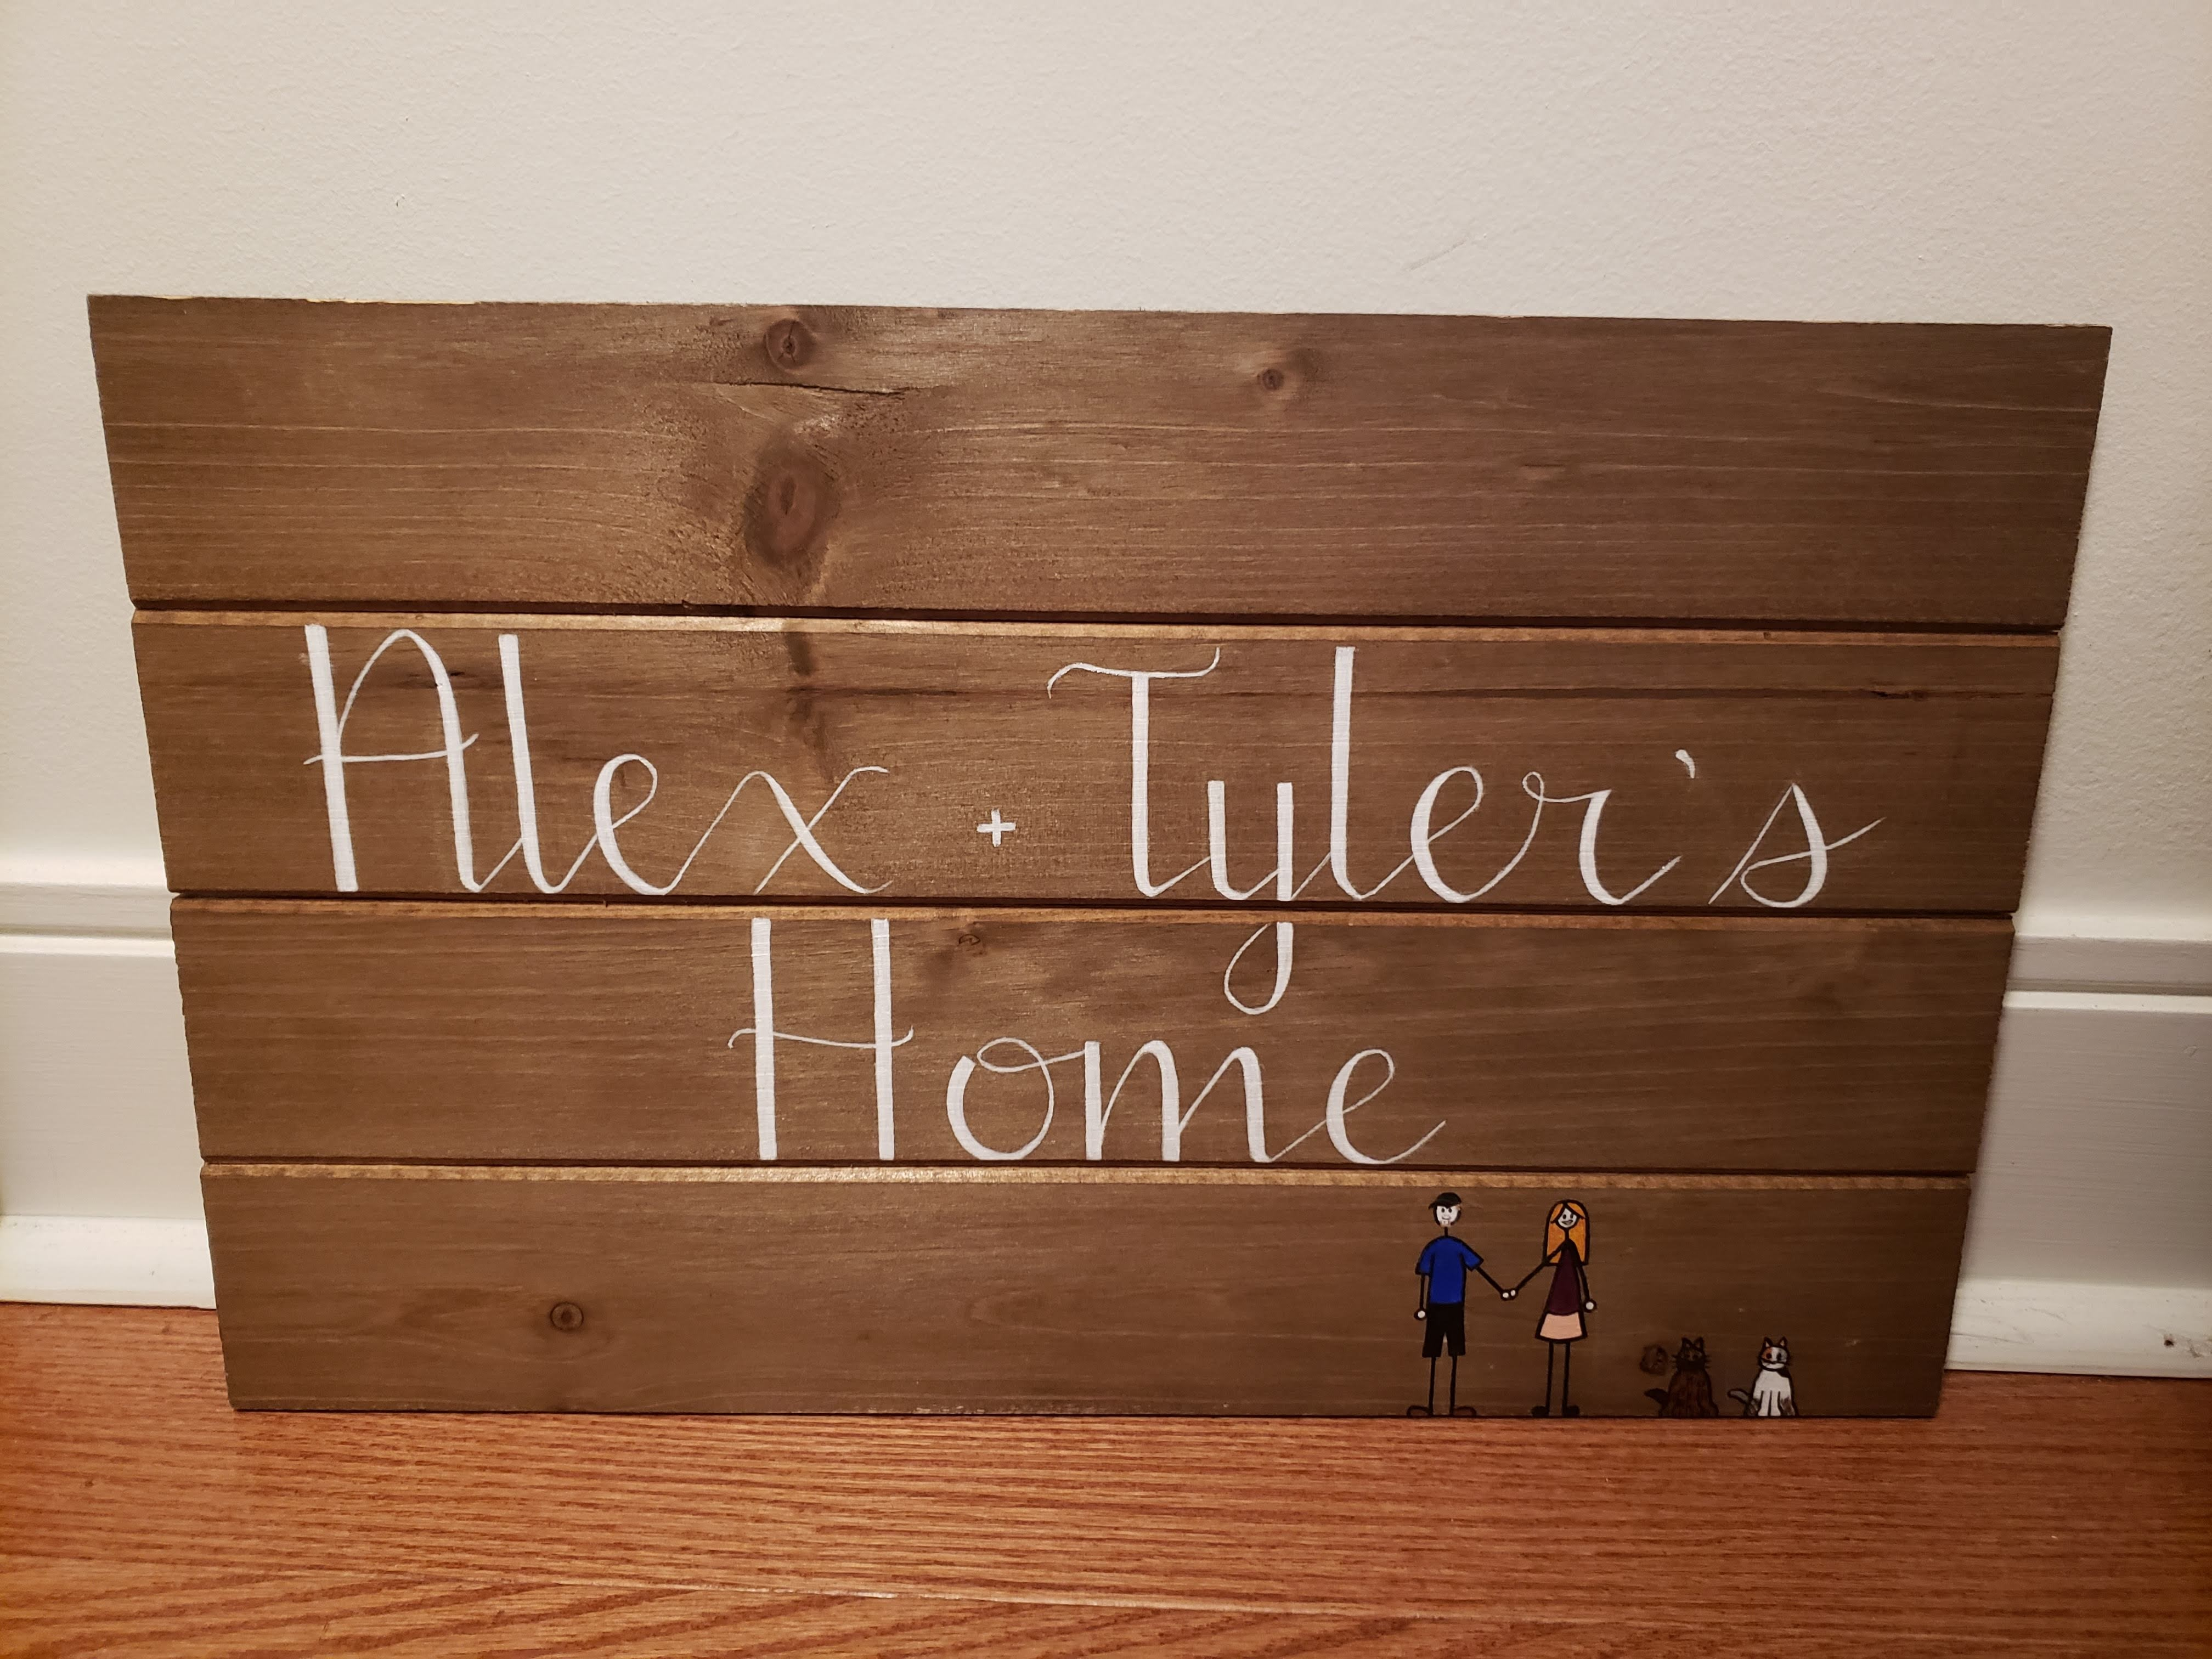 Alex & Tyler's Home (2019)